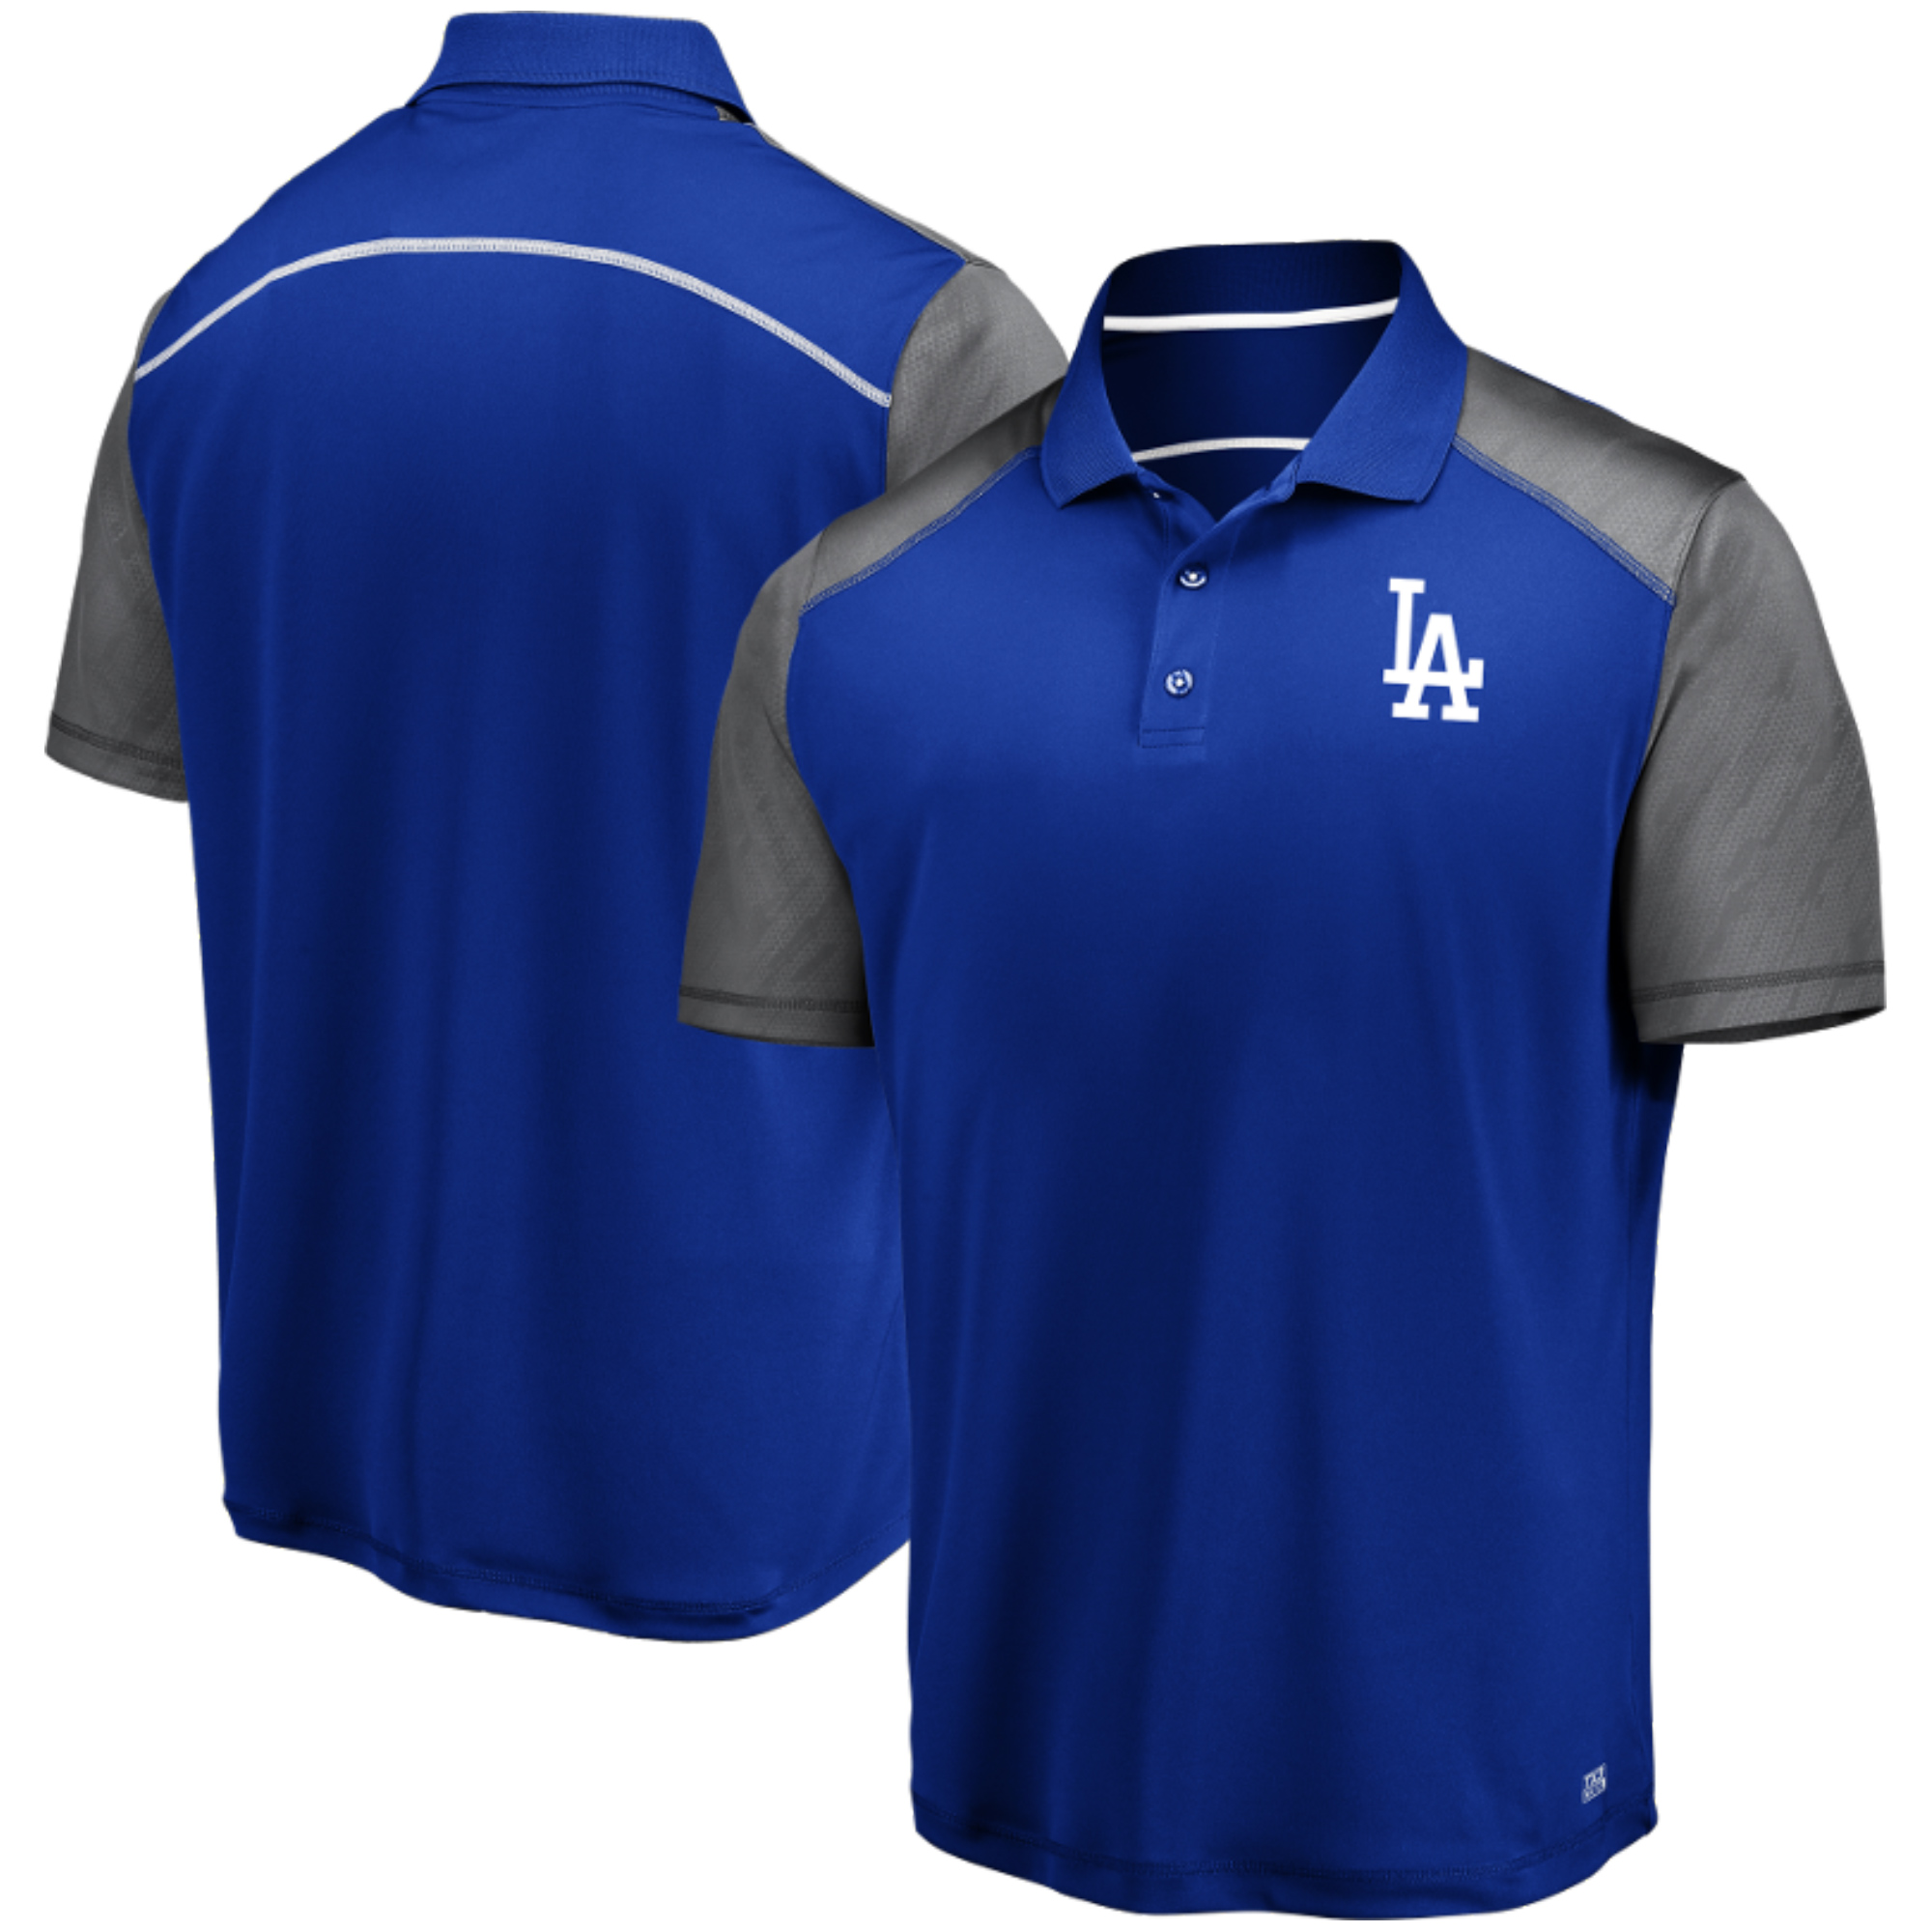 Men's Majestic Royal/Gray Los Angeles Dodgers TX3 Cool Polo